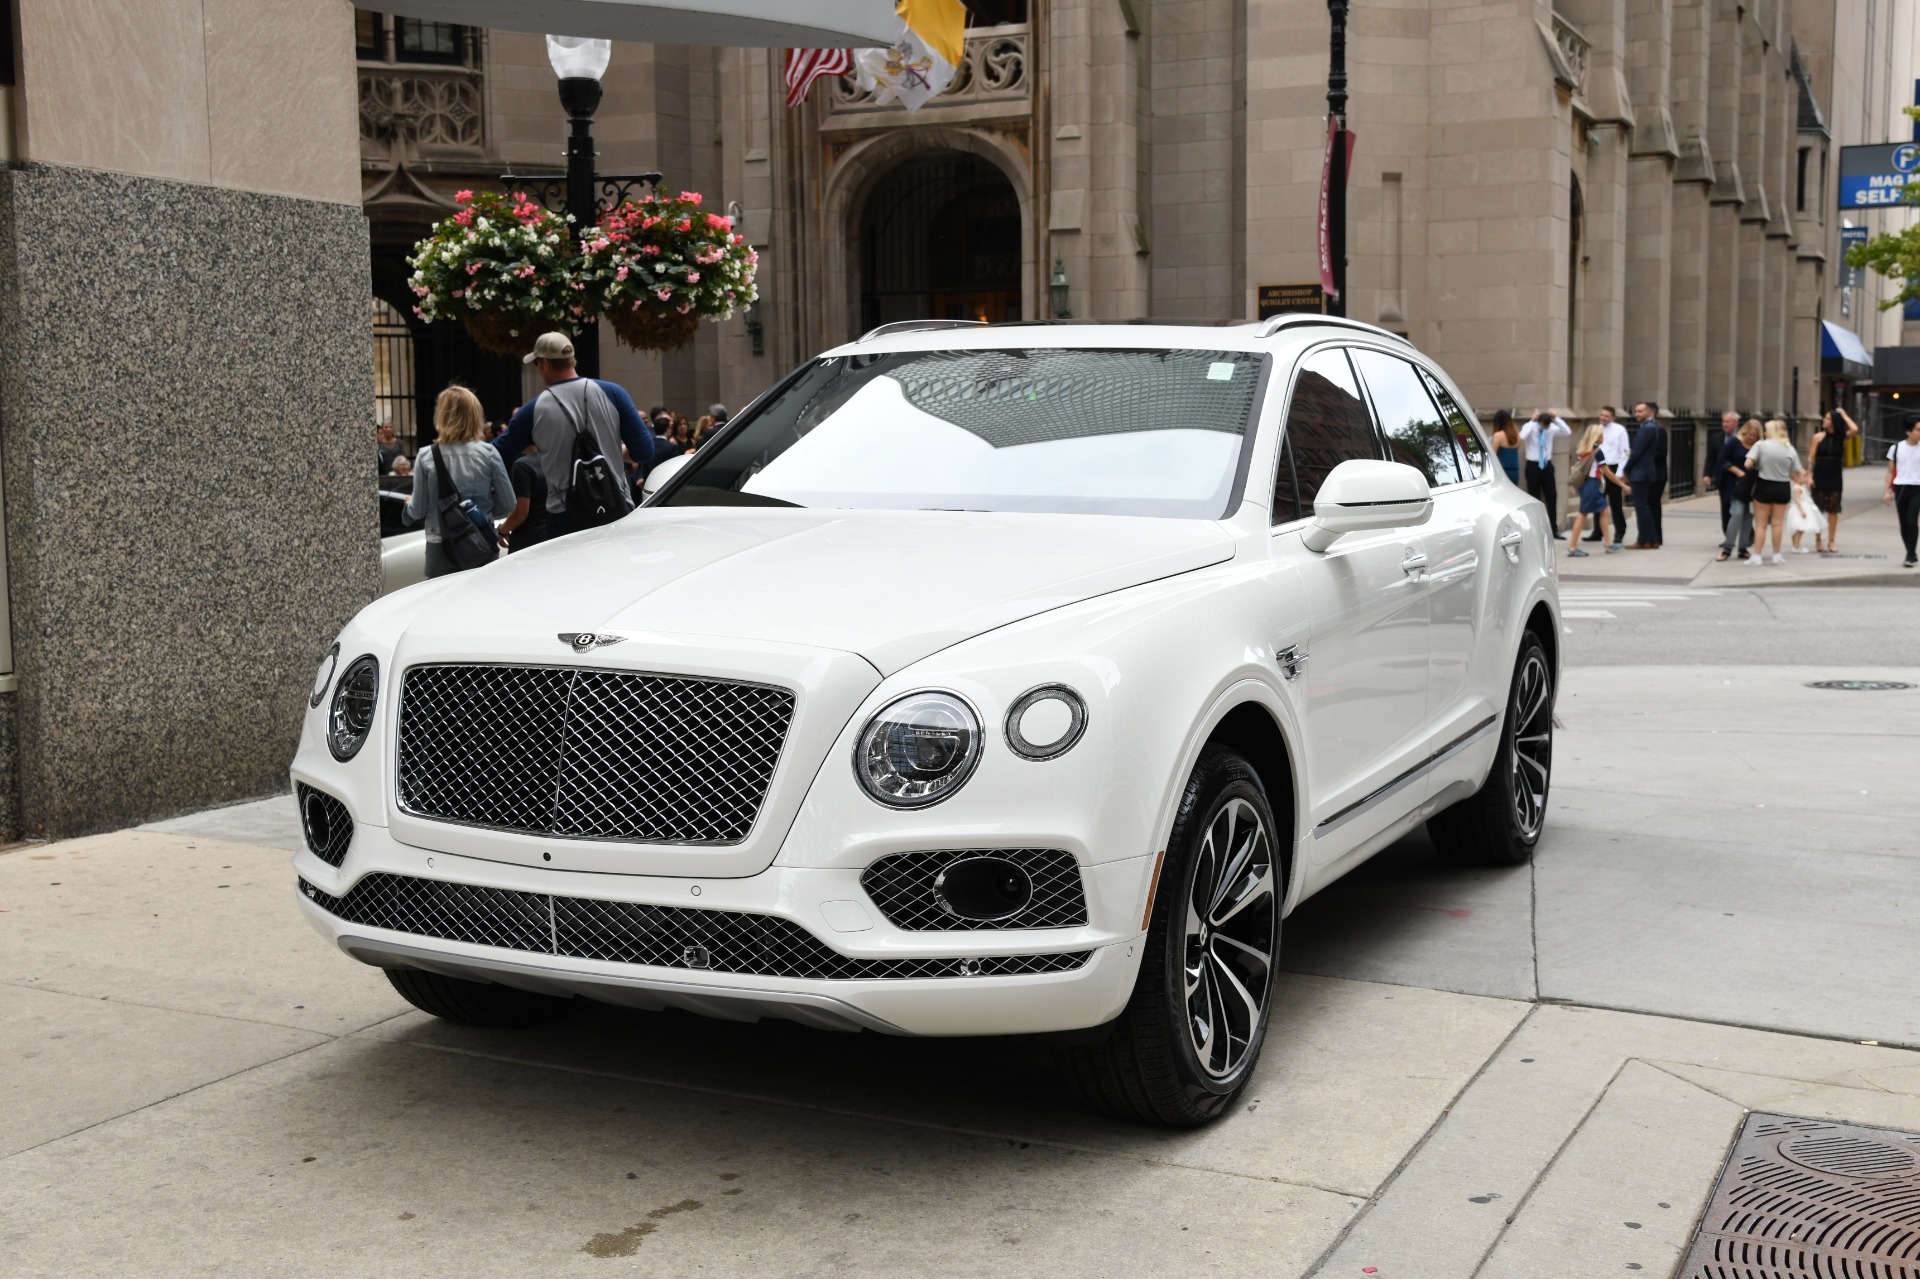 Bentley Bentayga For Sale >> 2020 Bentley Bentayga V8 Stock B1179 For Sale Near Chicago